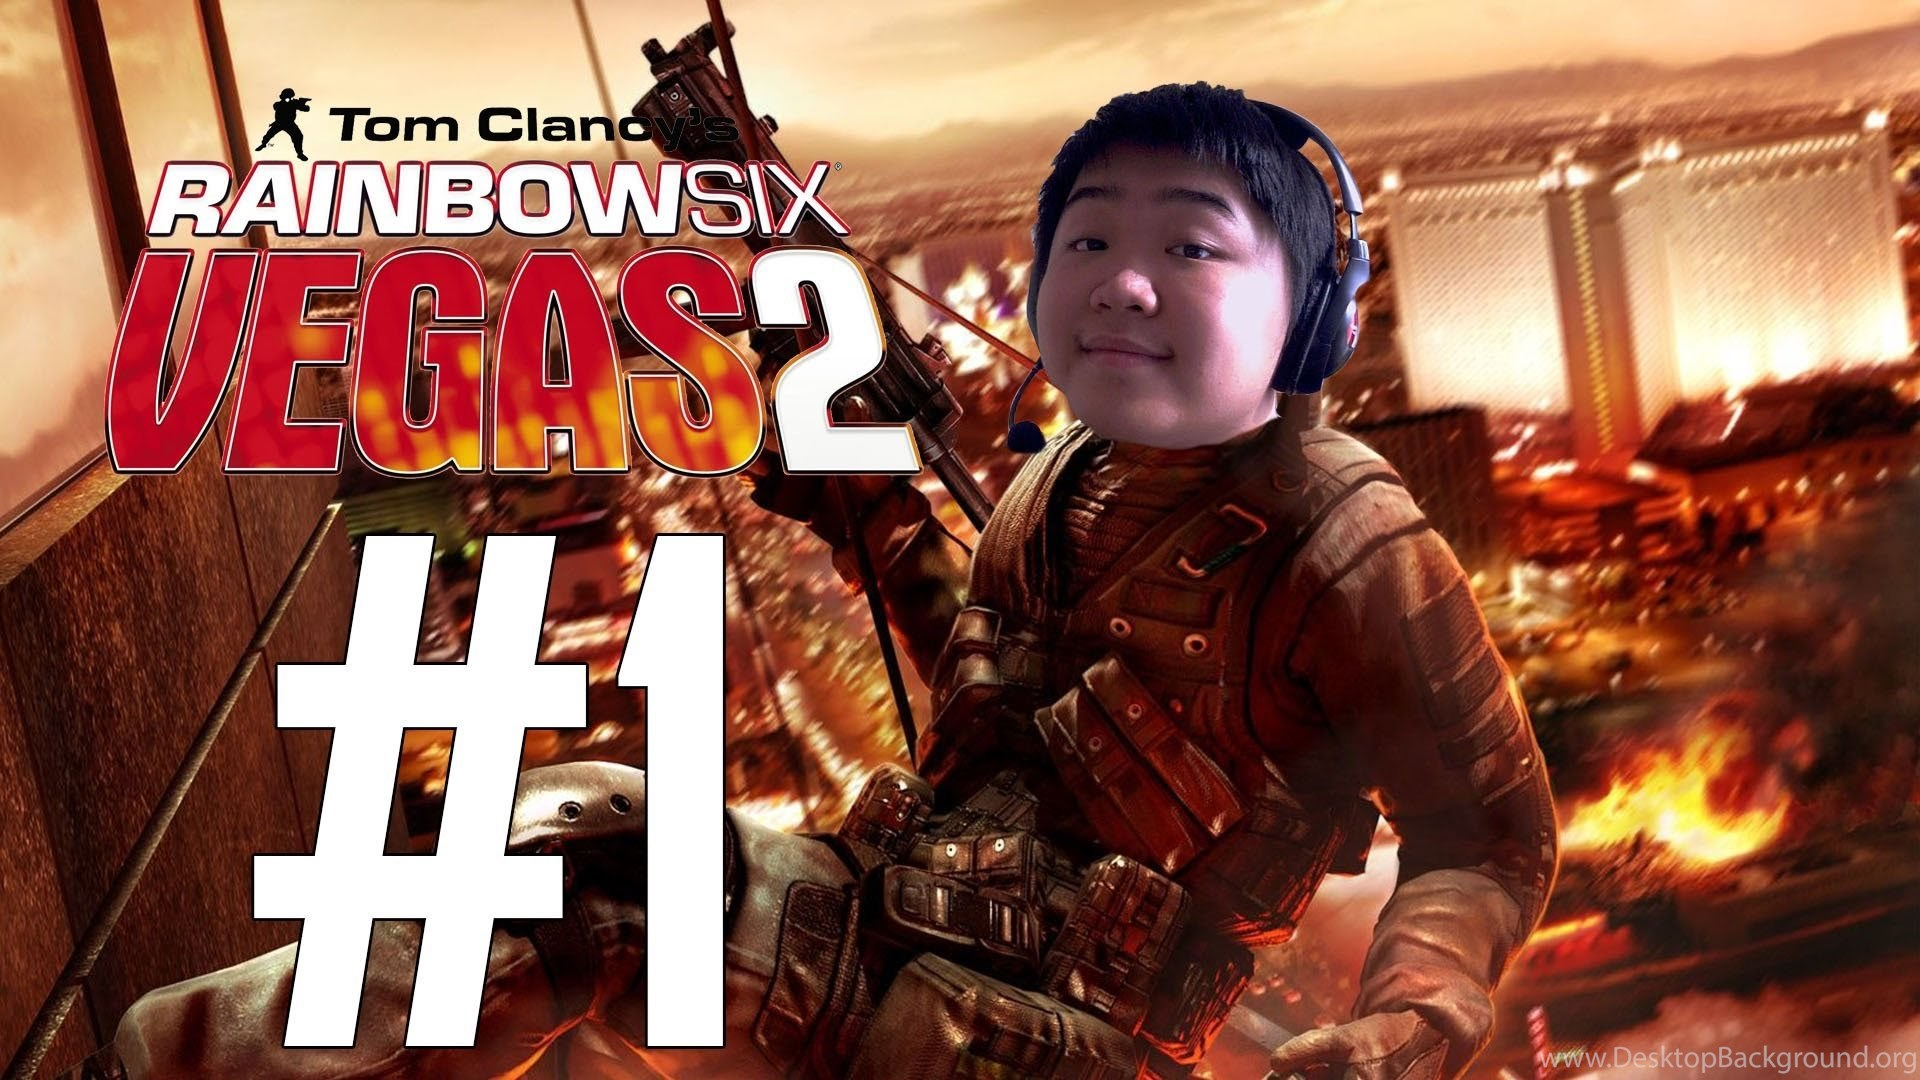 mitch plays: tom clancy's rainbow six vegas 2 mission 1 normal